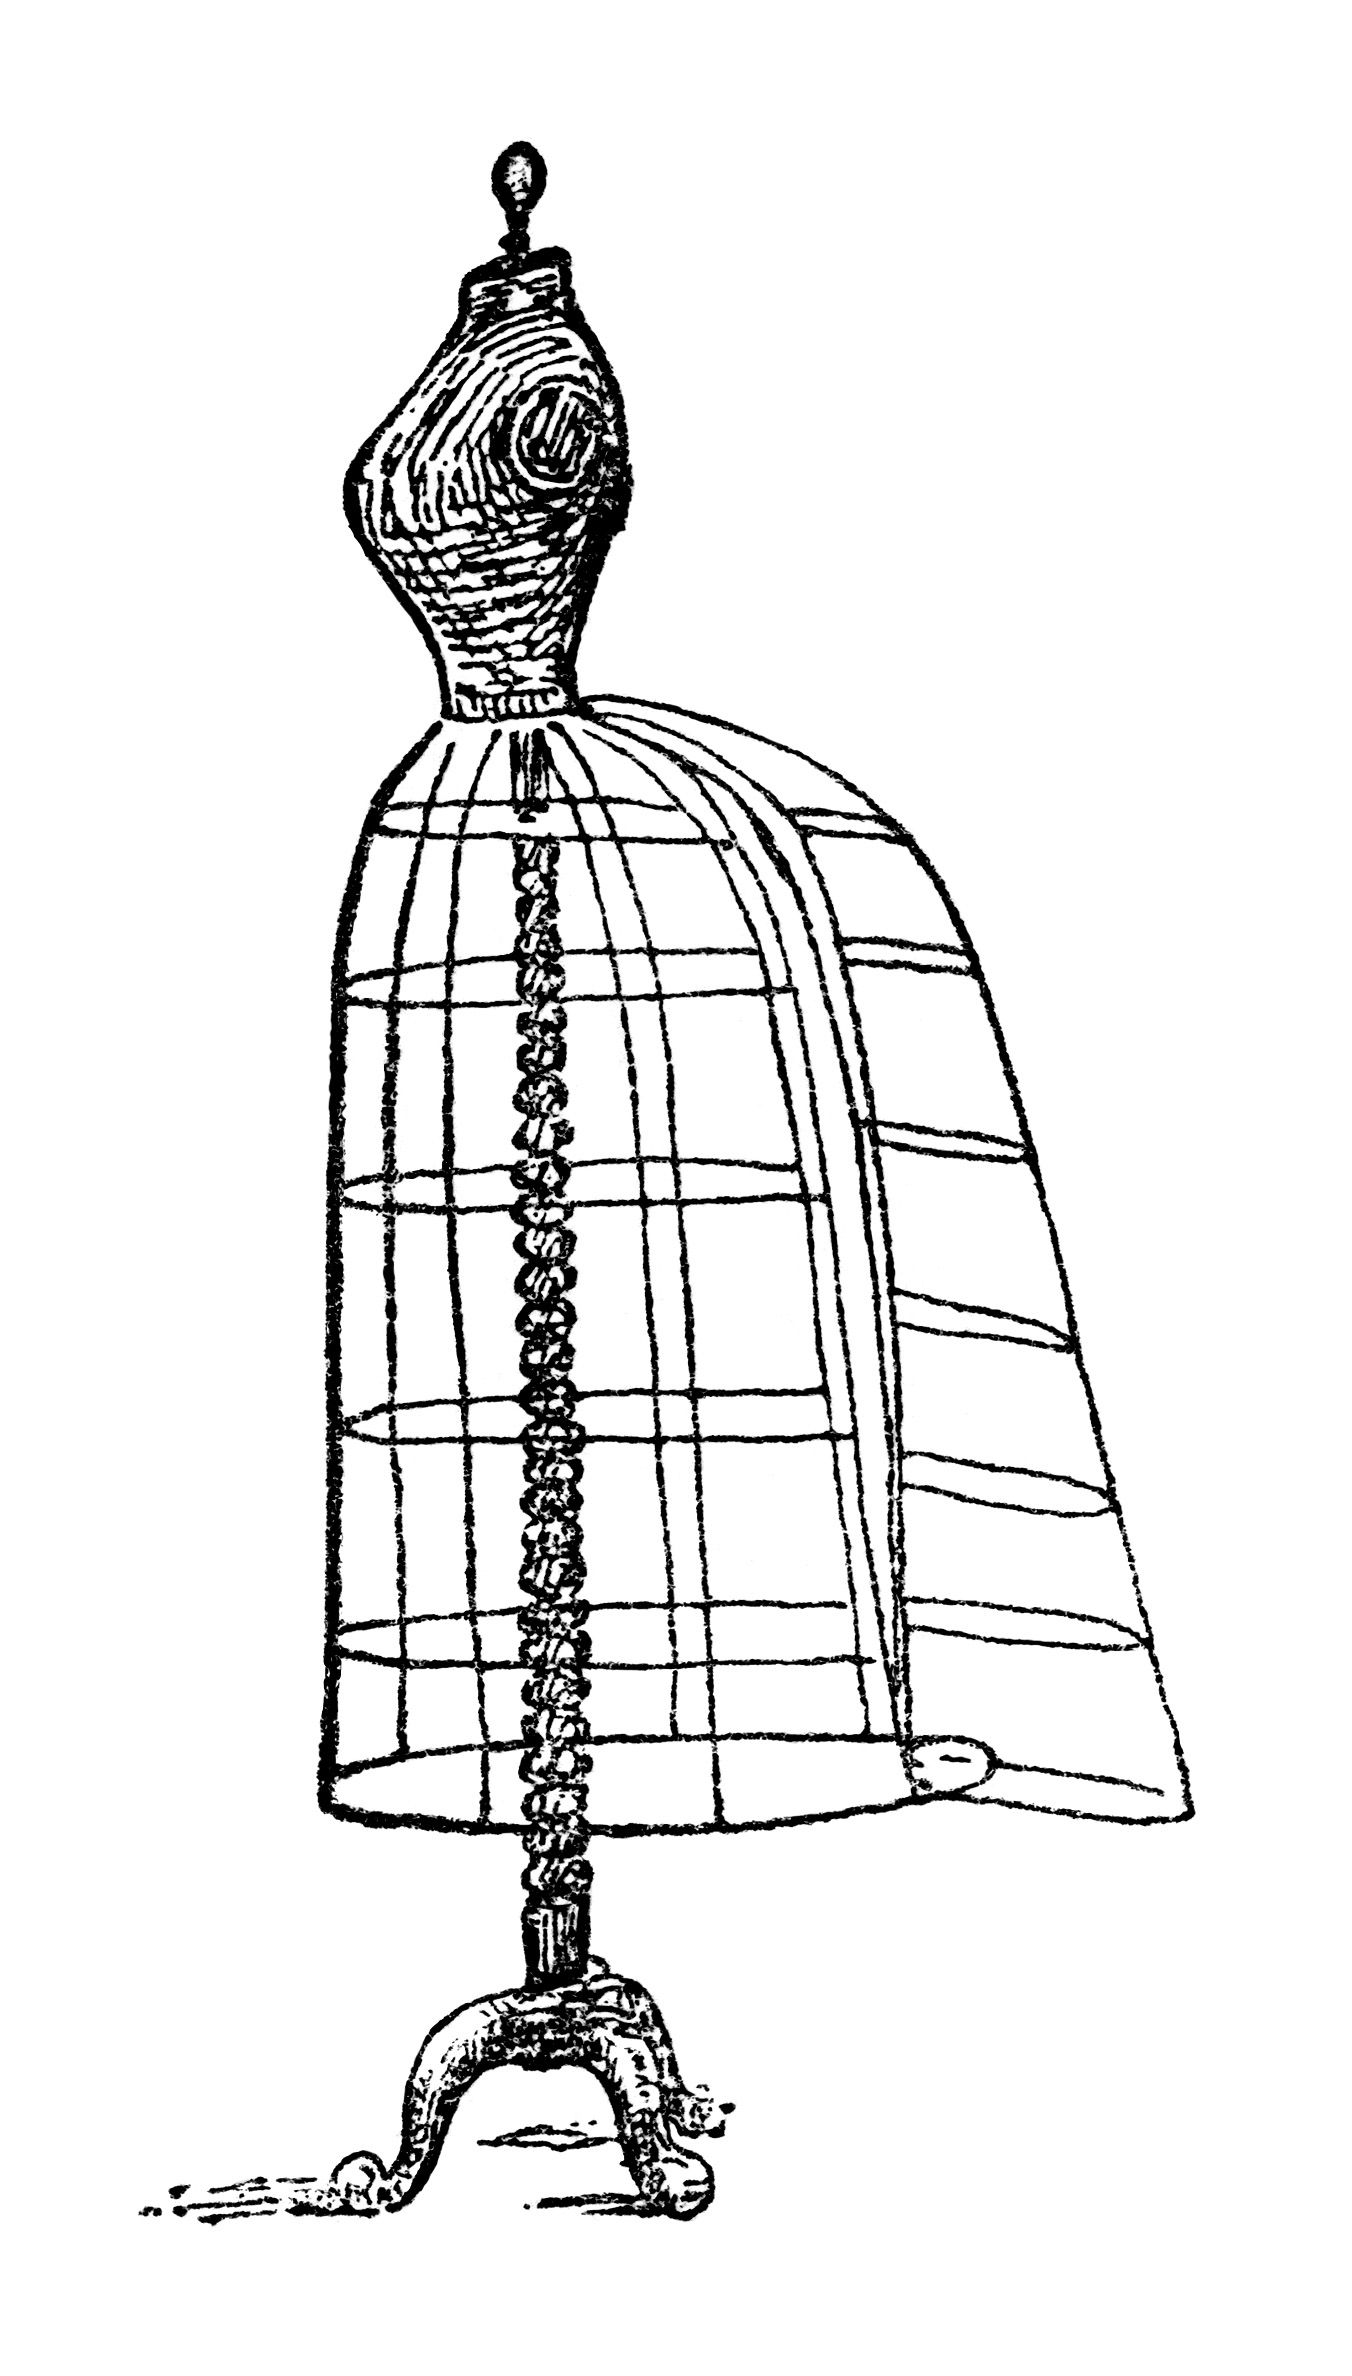 Sewing Machine Clip Art Black and White sewing clip